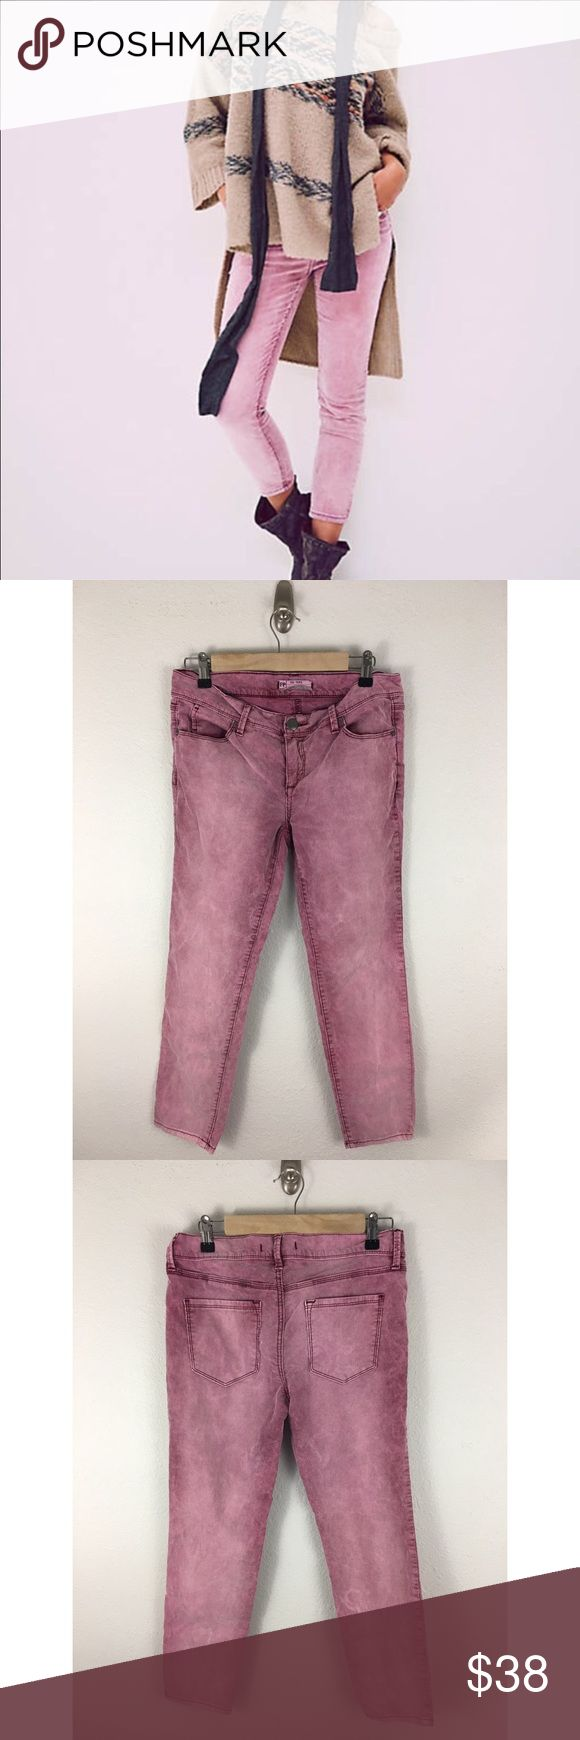 Free People Roller Cropped Cord Jeans  Sz 27 Free People Roller Cropped Cord Jeans -  Merlot Pink. Sz 27 with a 25.5 inseam, you can wear them Cuffed or Ankle length. Made of 98% Cotton 2% Spandex. In excellent preowned condition- no sign of wear. Free People Jeans Ankle & Cropped